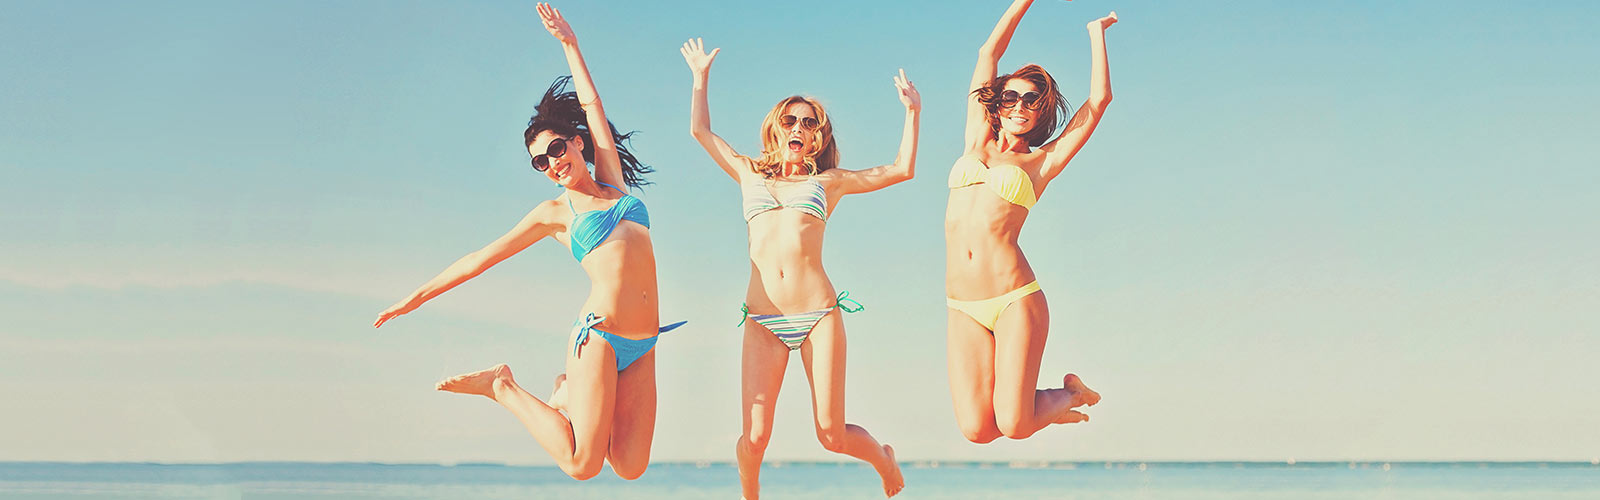 Laser hair removal for bikini line and underarms at Smooth Effects